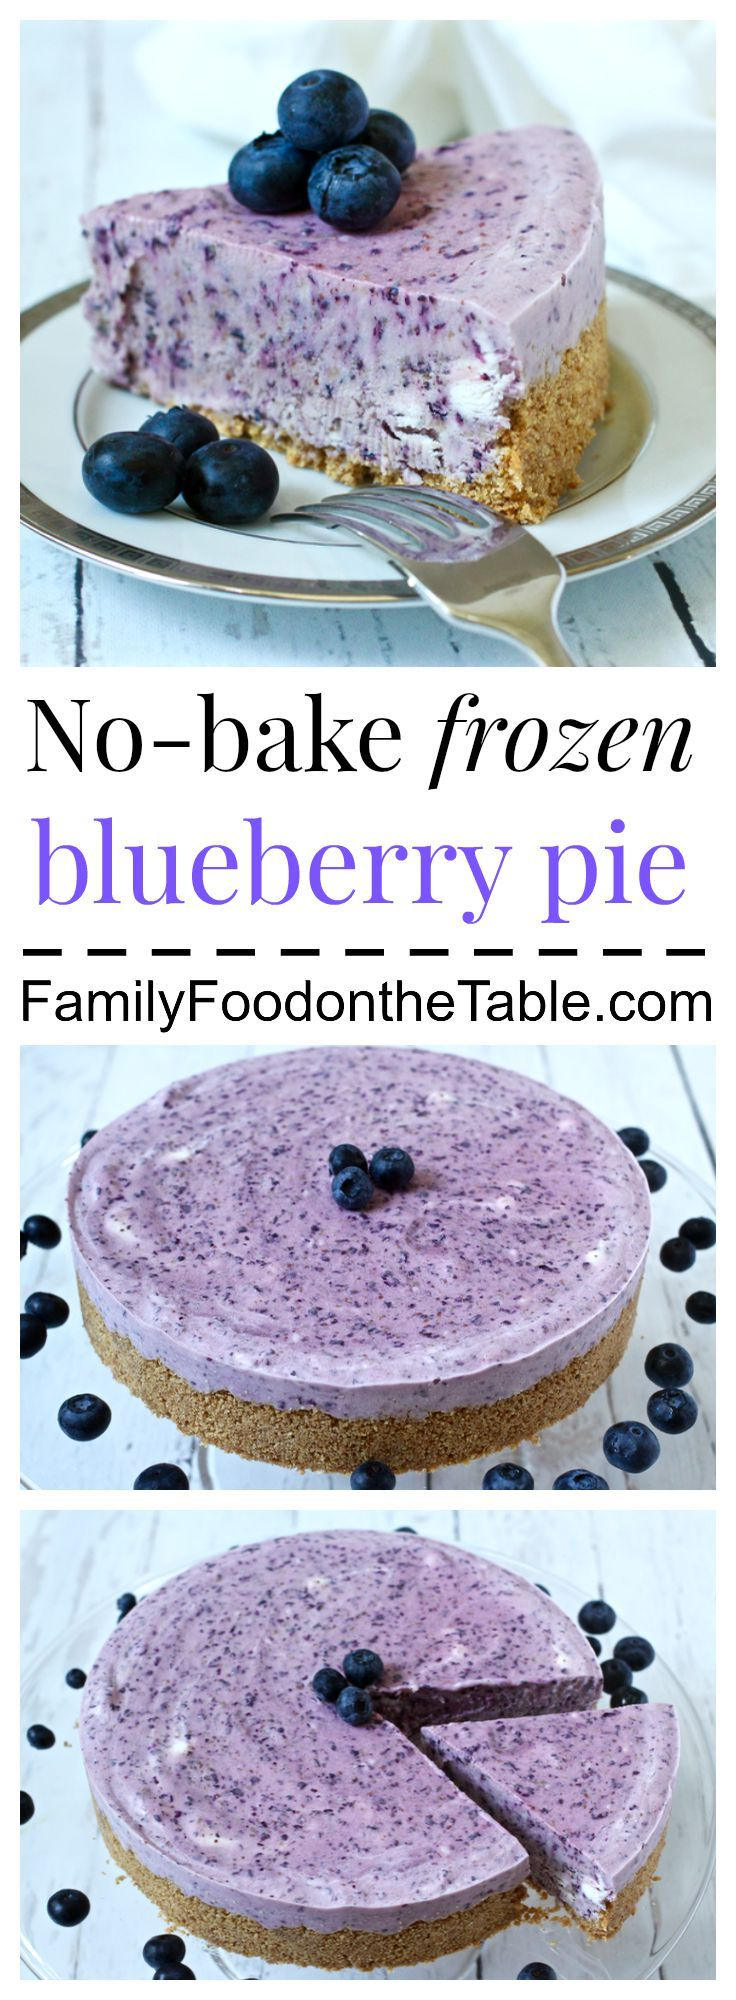 A creamy, no-bake frozen blueberry pie, perfect for summer! | FamilyFoodontheTable.com